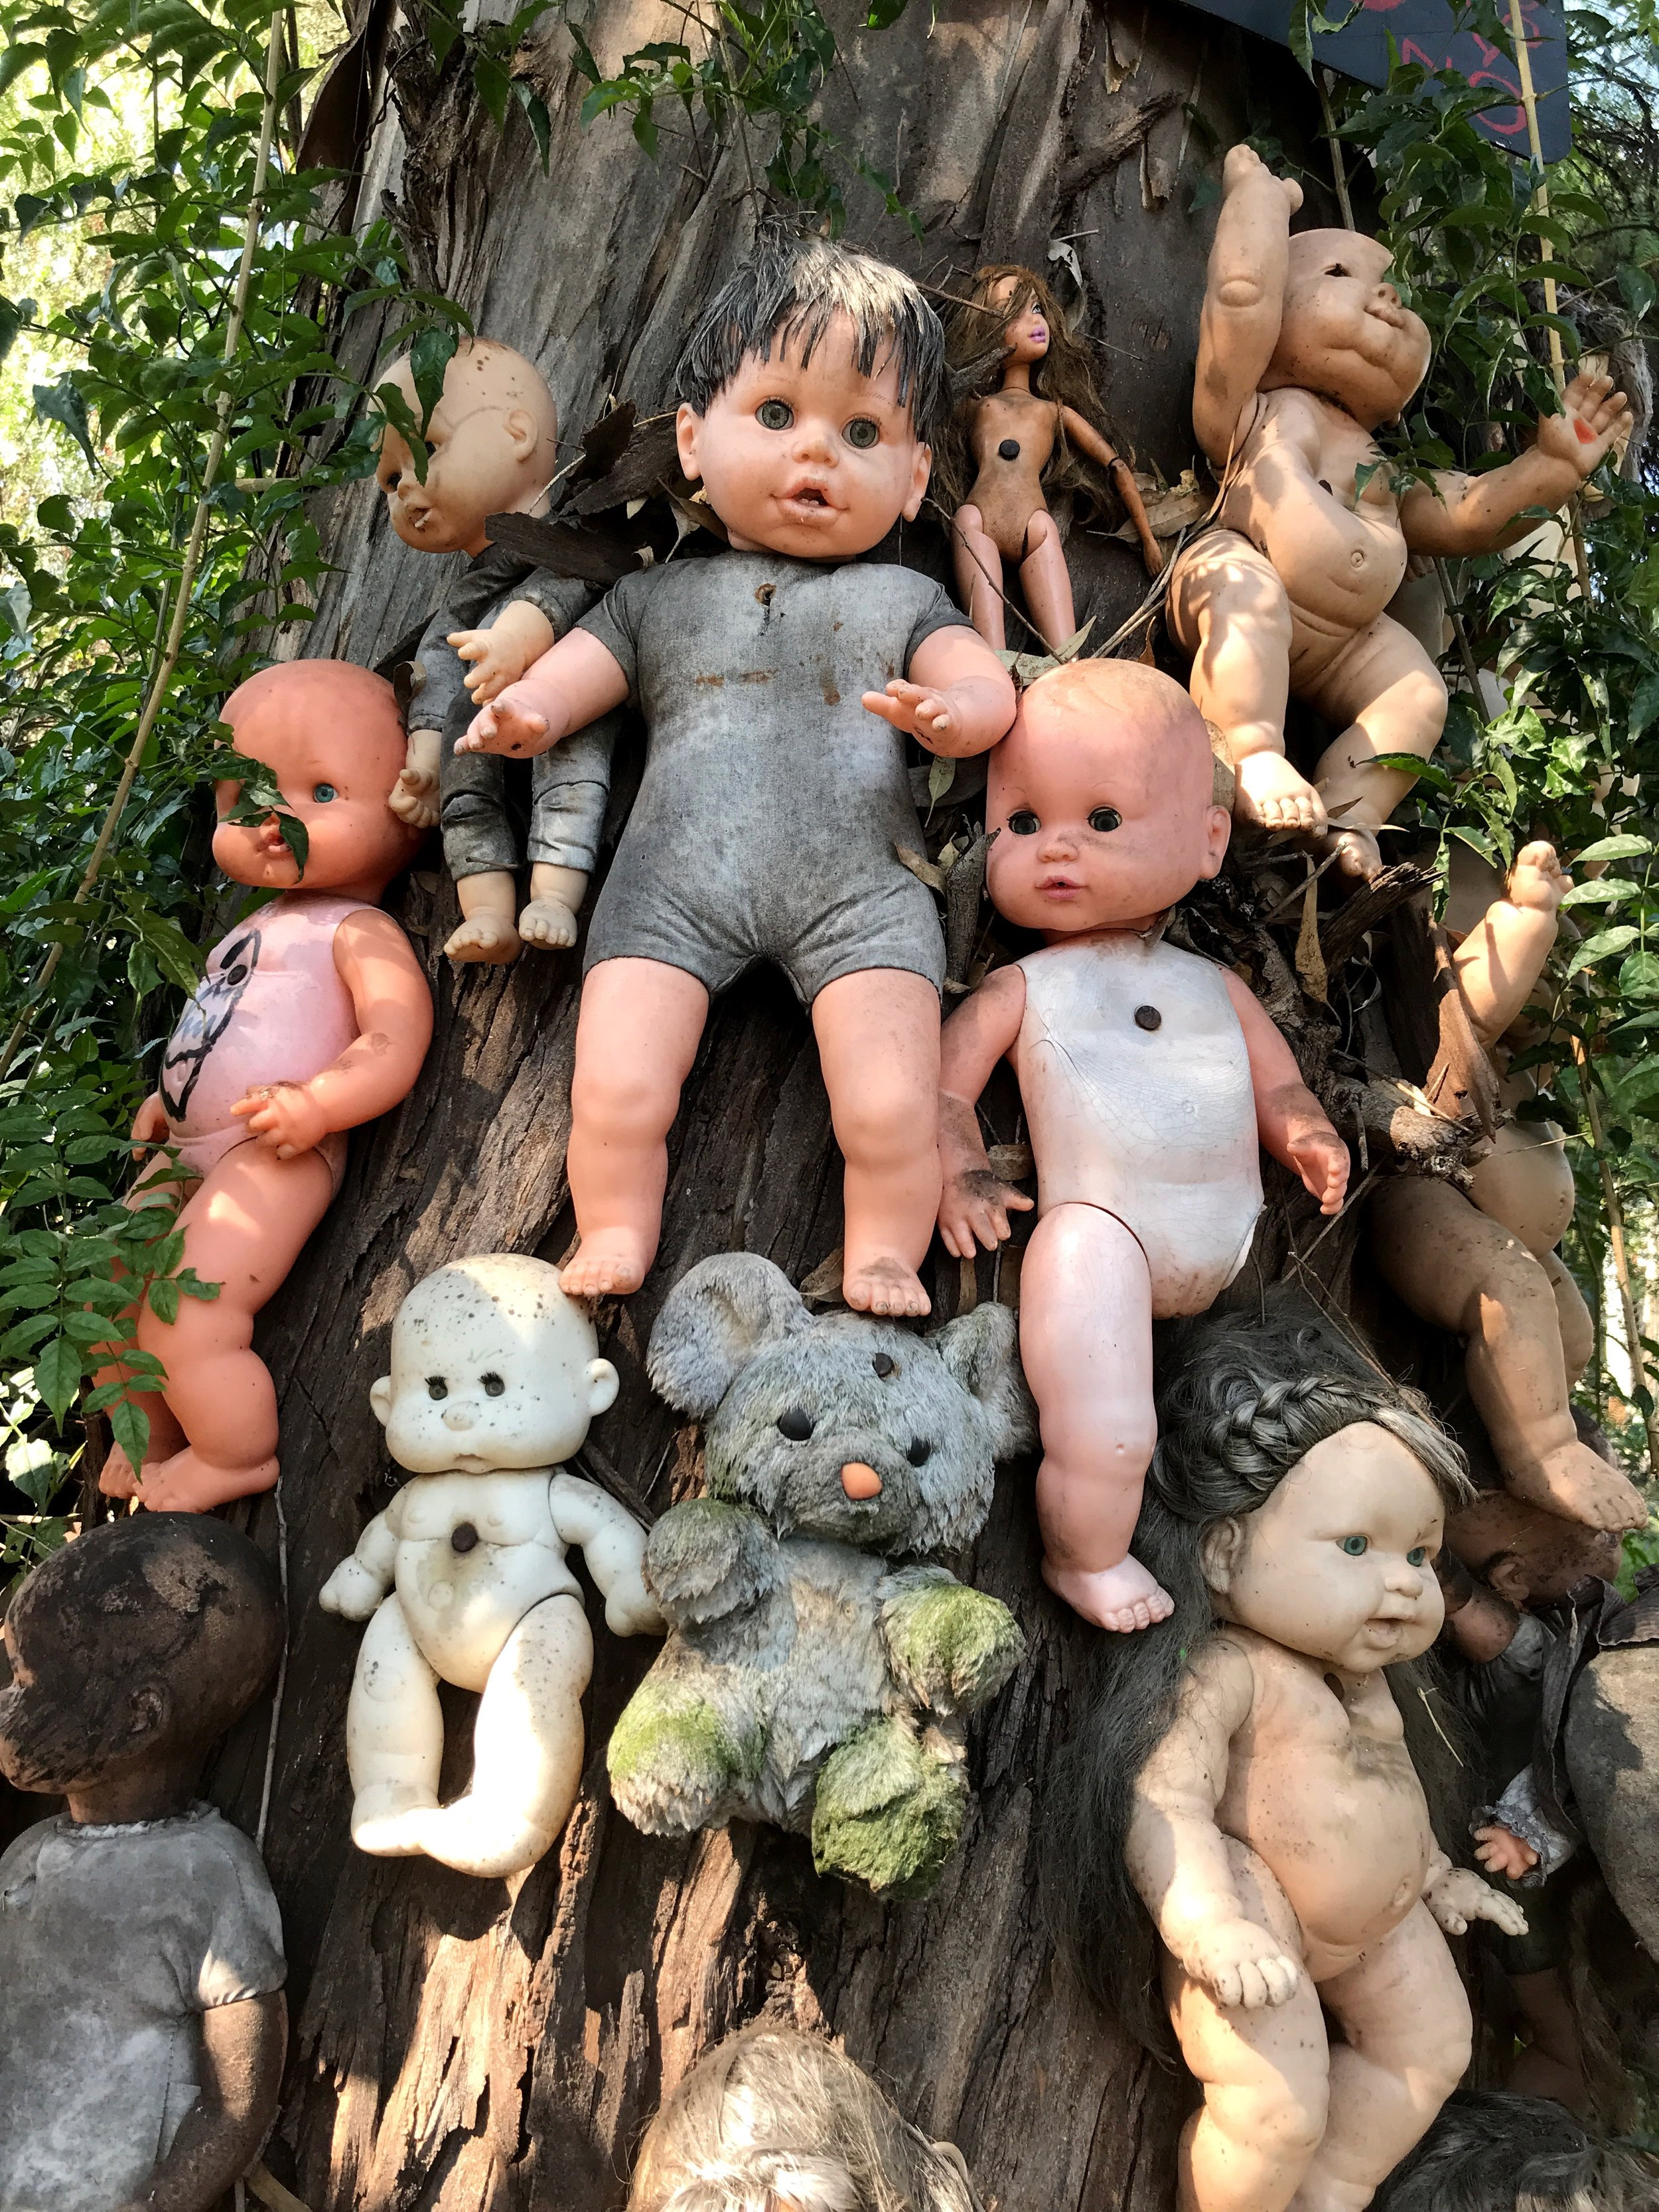 These dolls have been nailed to a tree, creating a macabre tableau